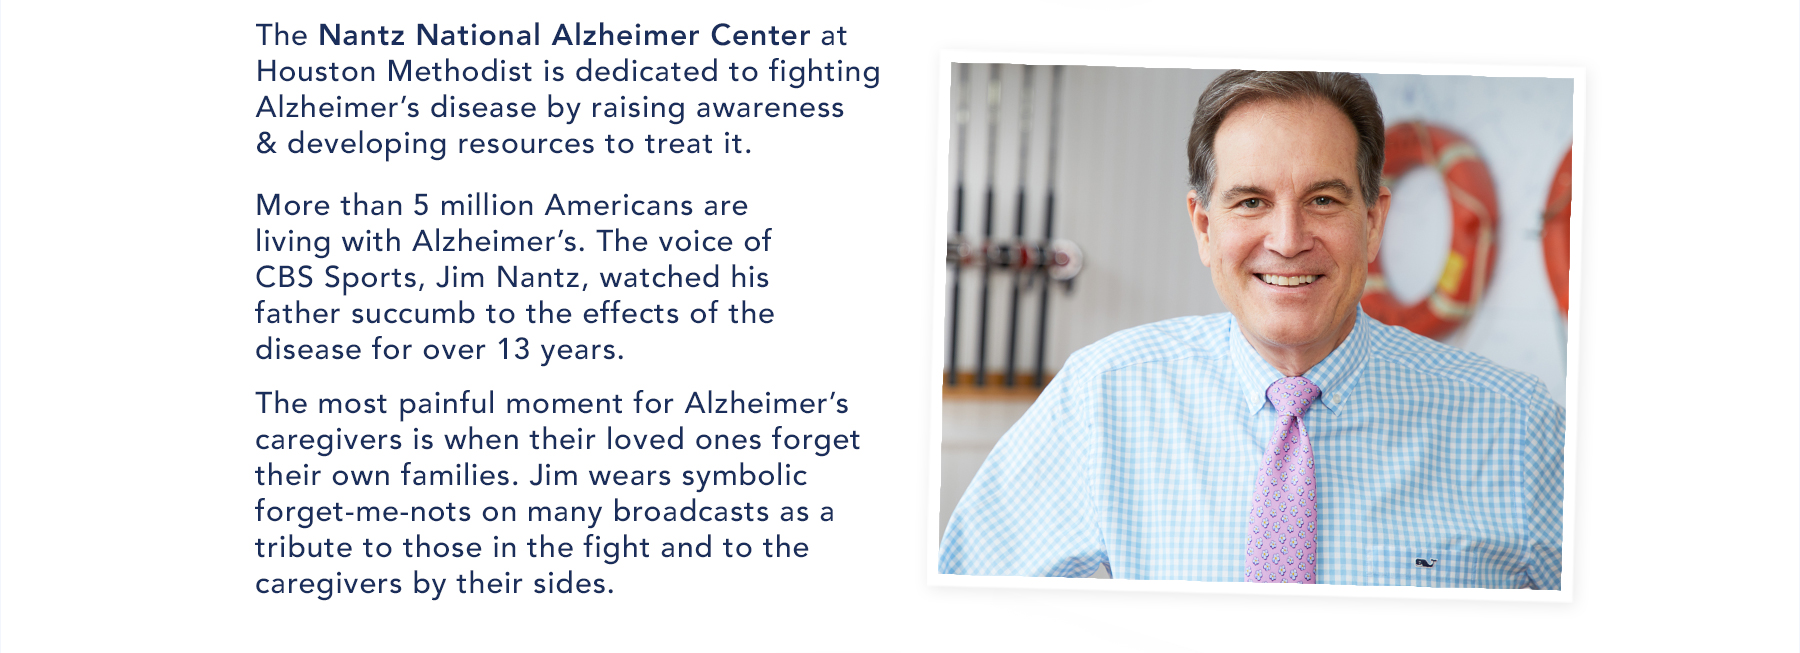 The Nantz National Alzheimer Center at Houston Methodiest is dedicated to fighting Alzheimer's disease by raising awareness & developing resources to treat it. More than 5 million Americans are living wiht Alzheimer's. The voice of CBS Sports, Jim Nantz, watched his father succumb to the effects of the disease for over 13 years. The most painful moment for Alzheimer's caregivers is when their loved ones forget their own families. Jum wears symbolic forget-me-nots on many broadcasts as a tribute to those in the fight and to the caregivers by their sides. Vist nantzfriends.org.